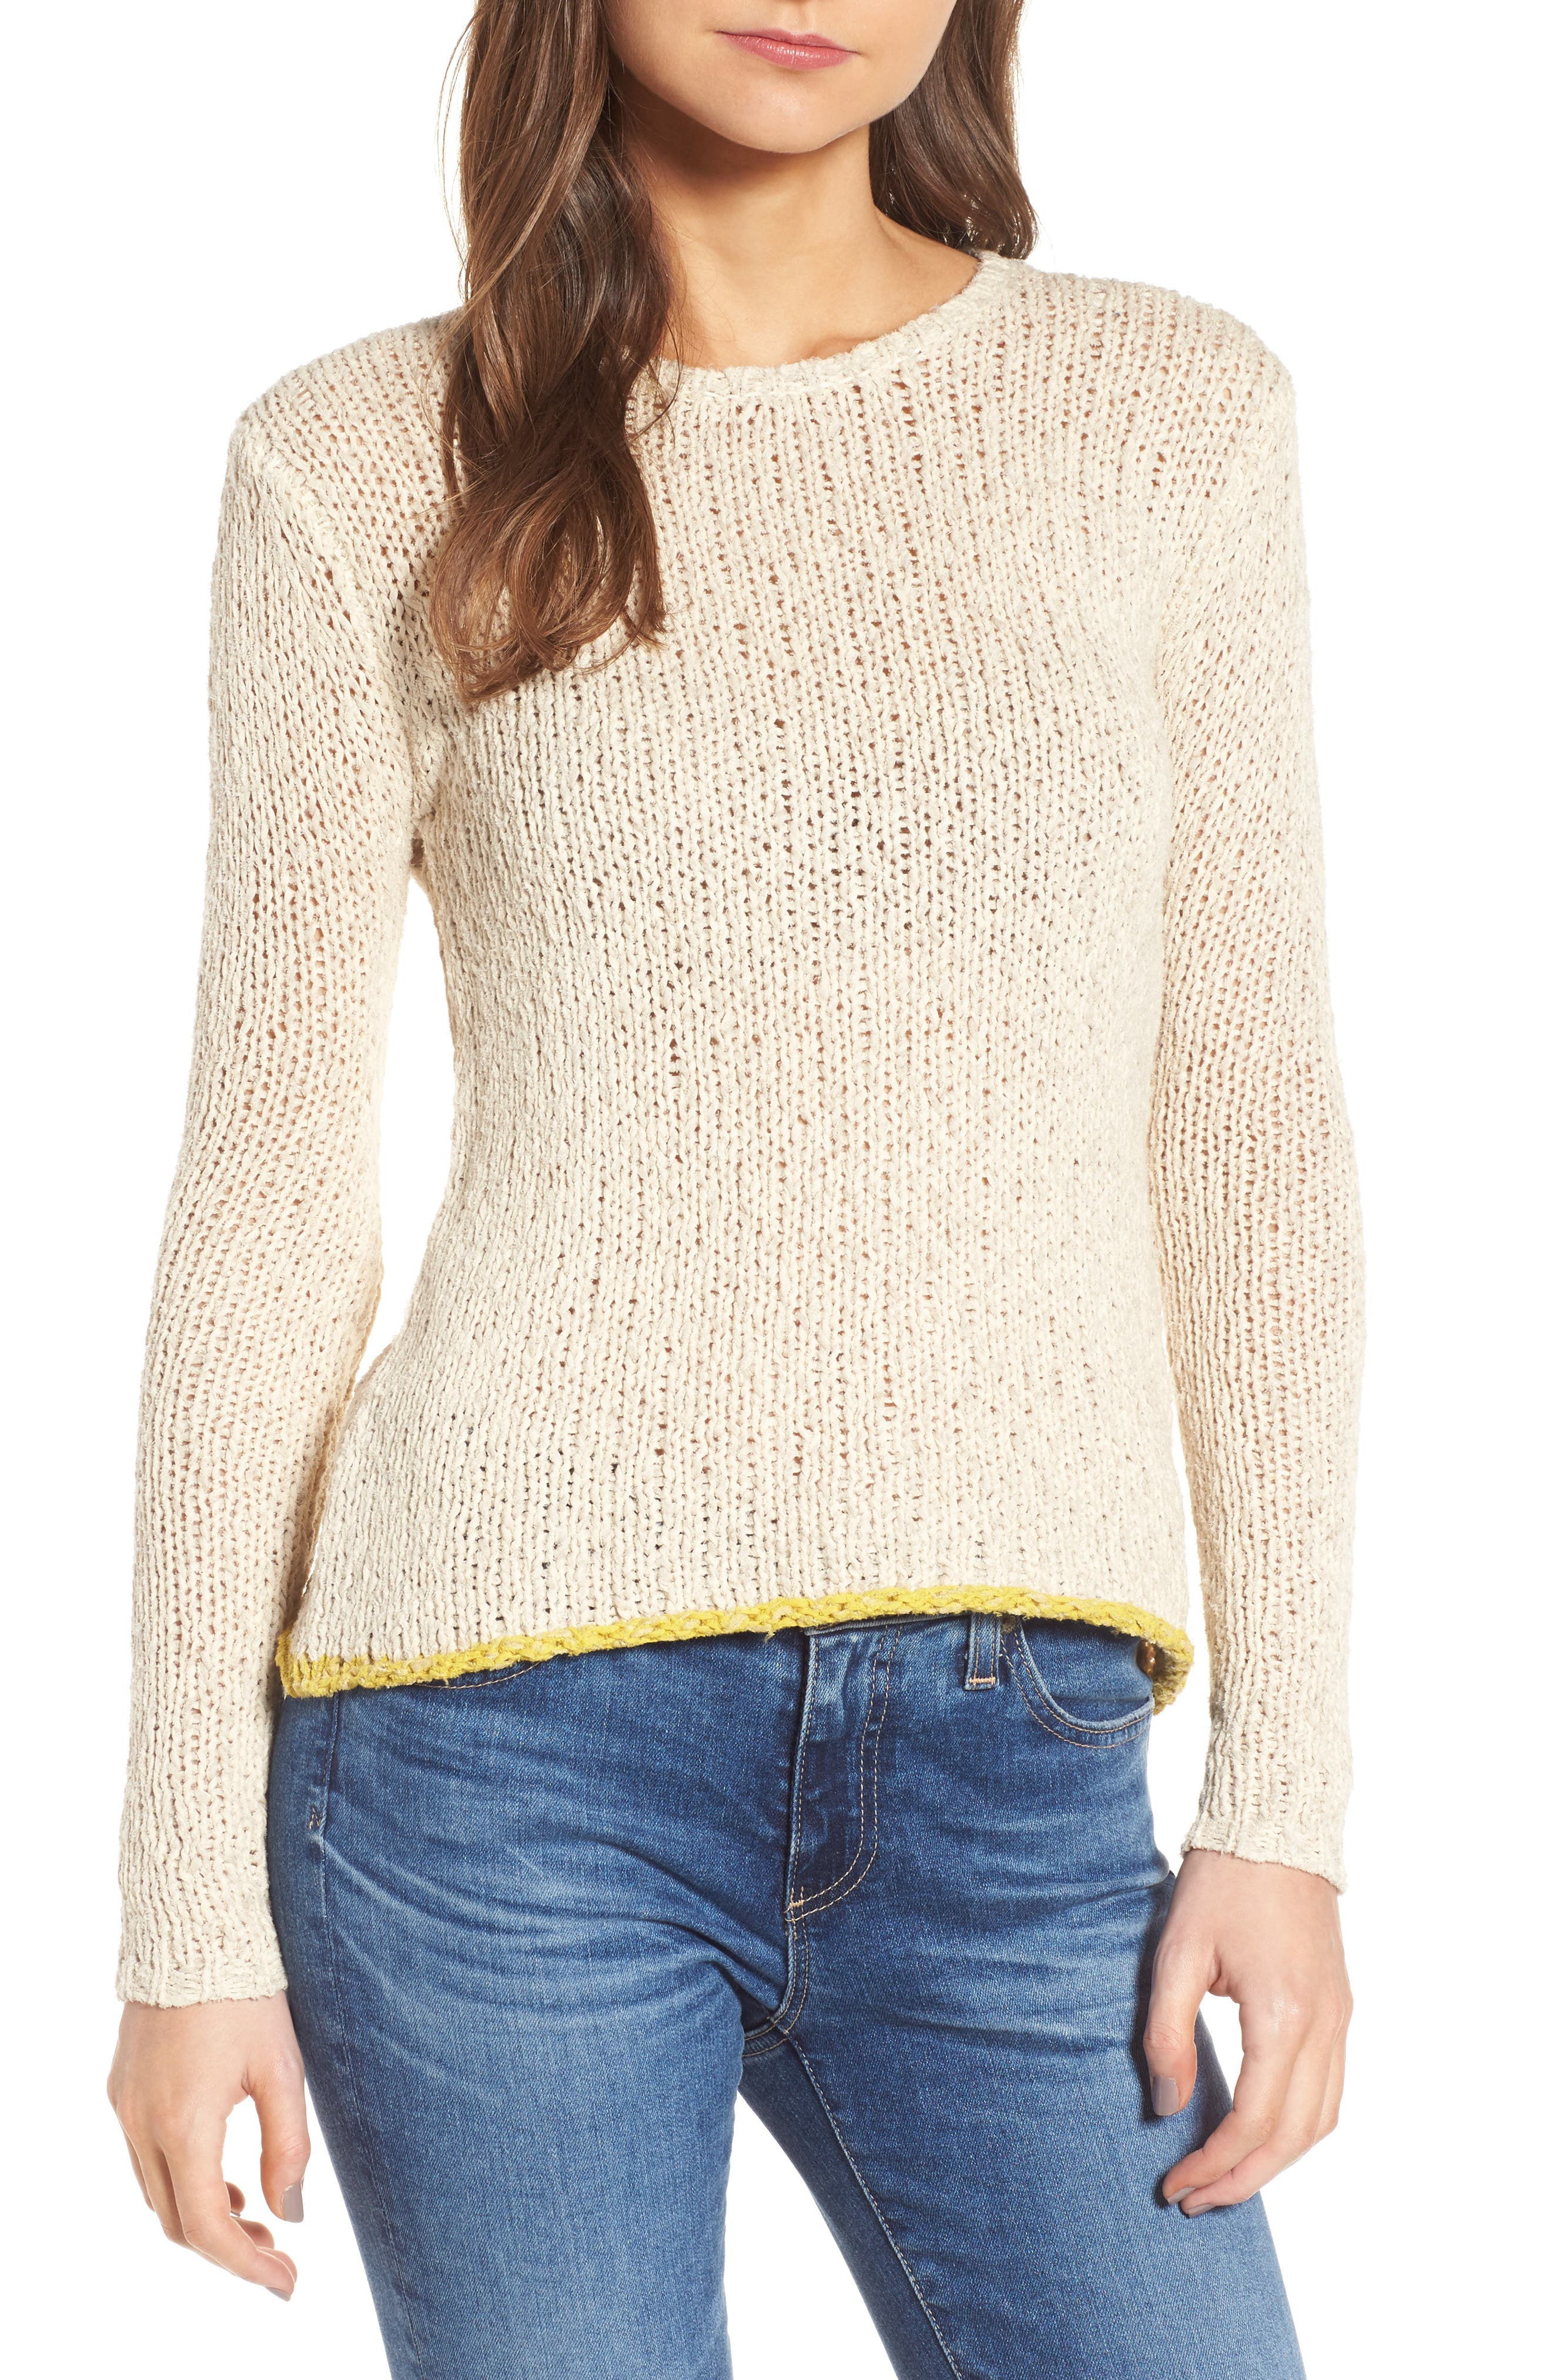 James Perse Open Stitch Sweater